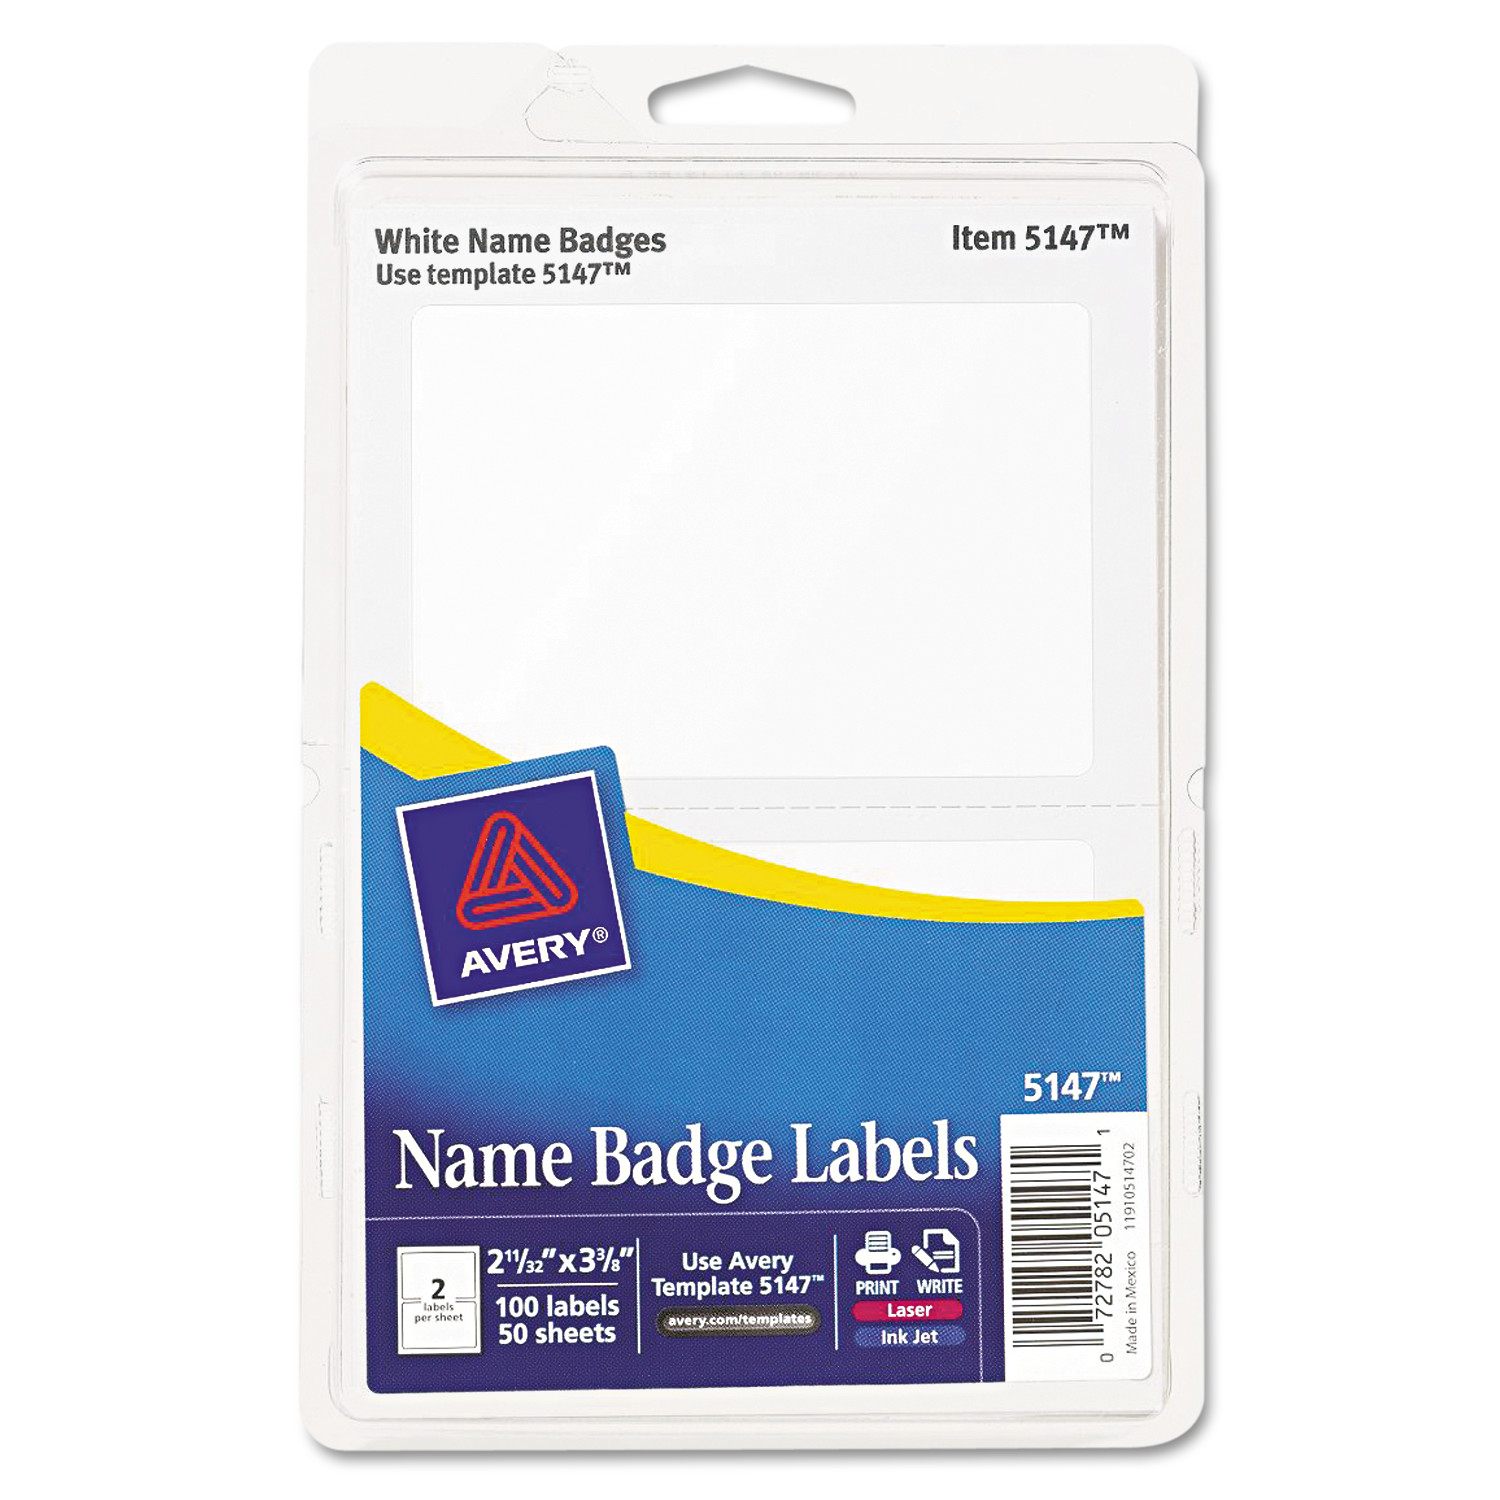 Avery Printable Self-Adhesive Name Badges, 2 1/3 X 3 3/8, White